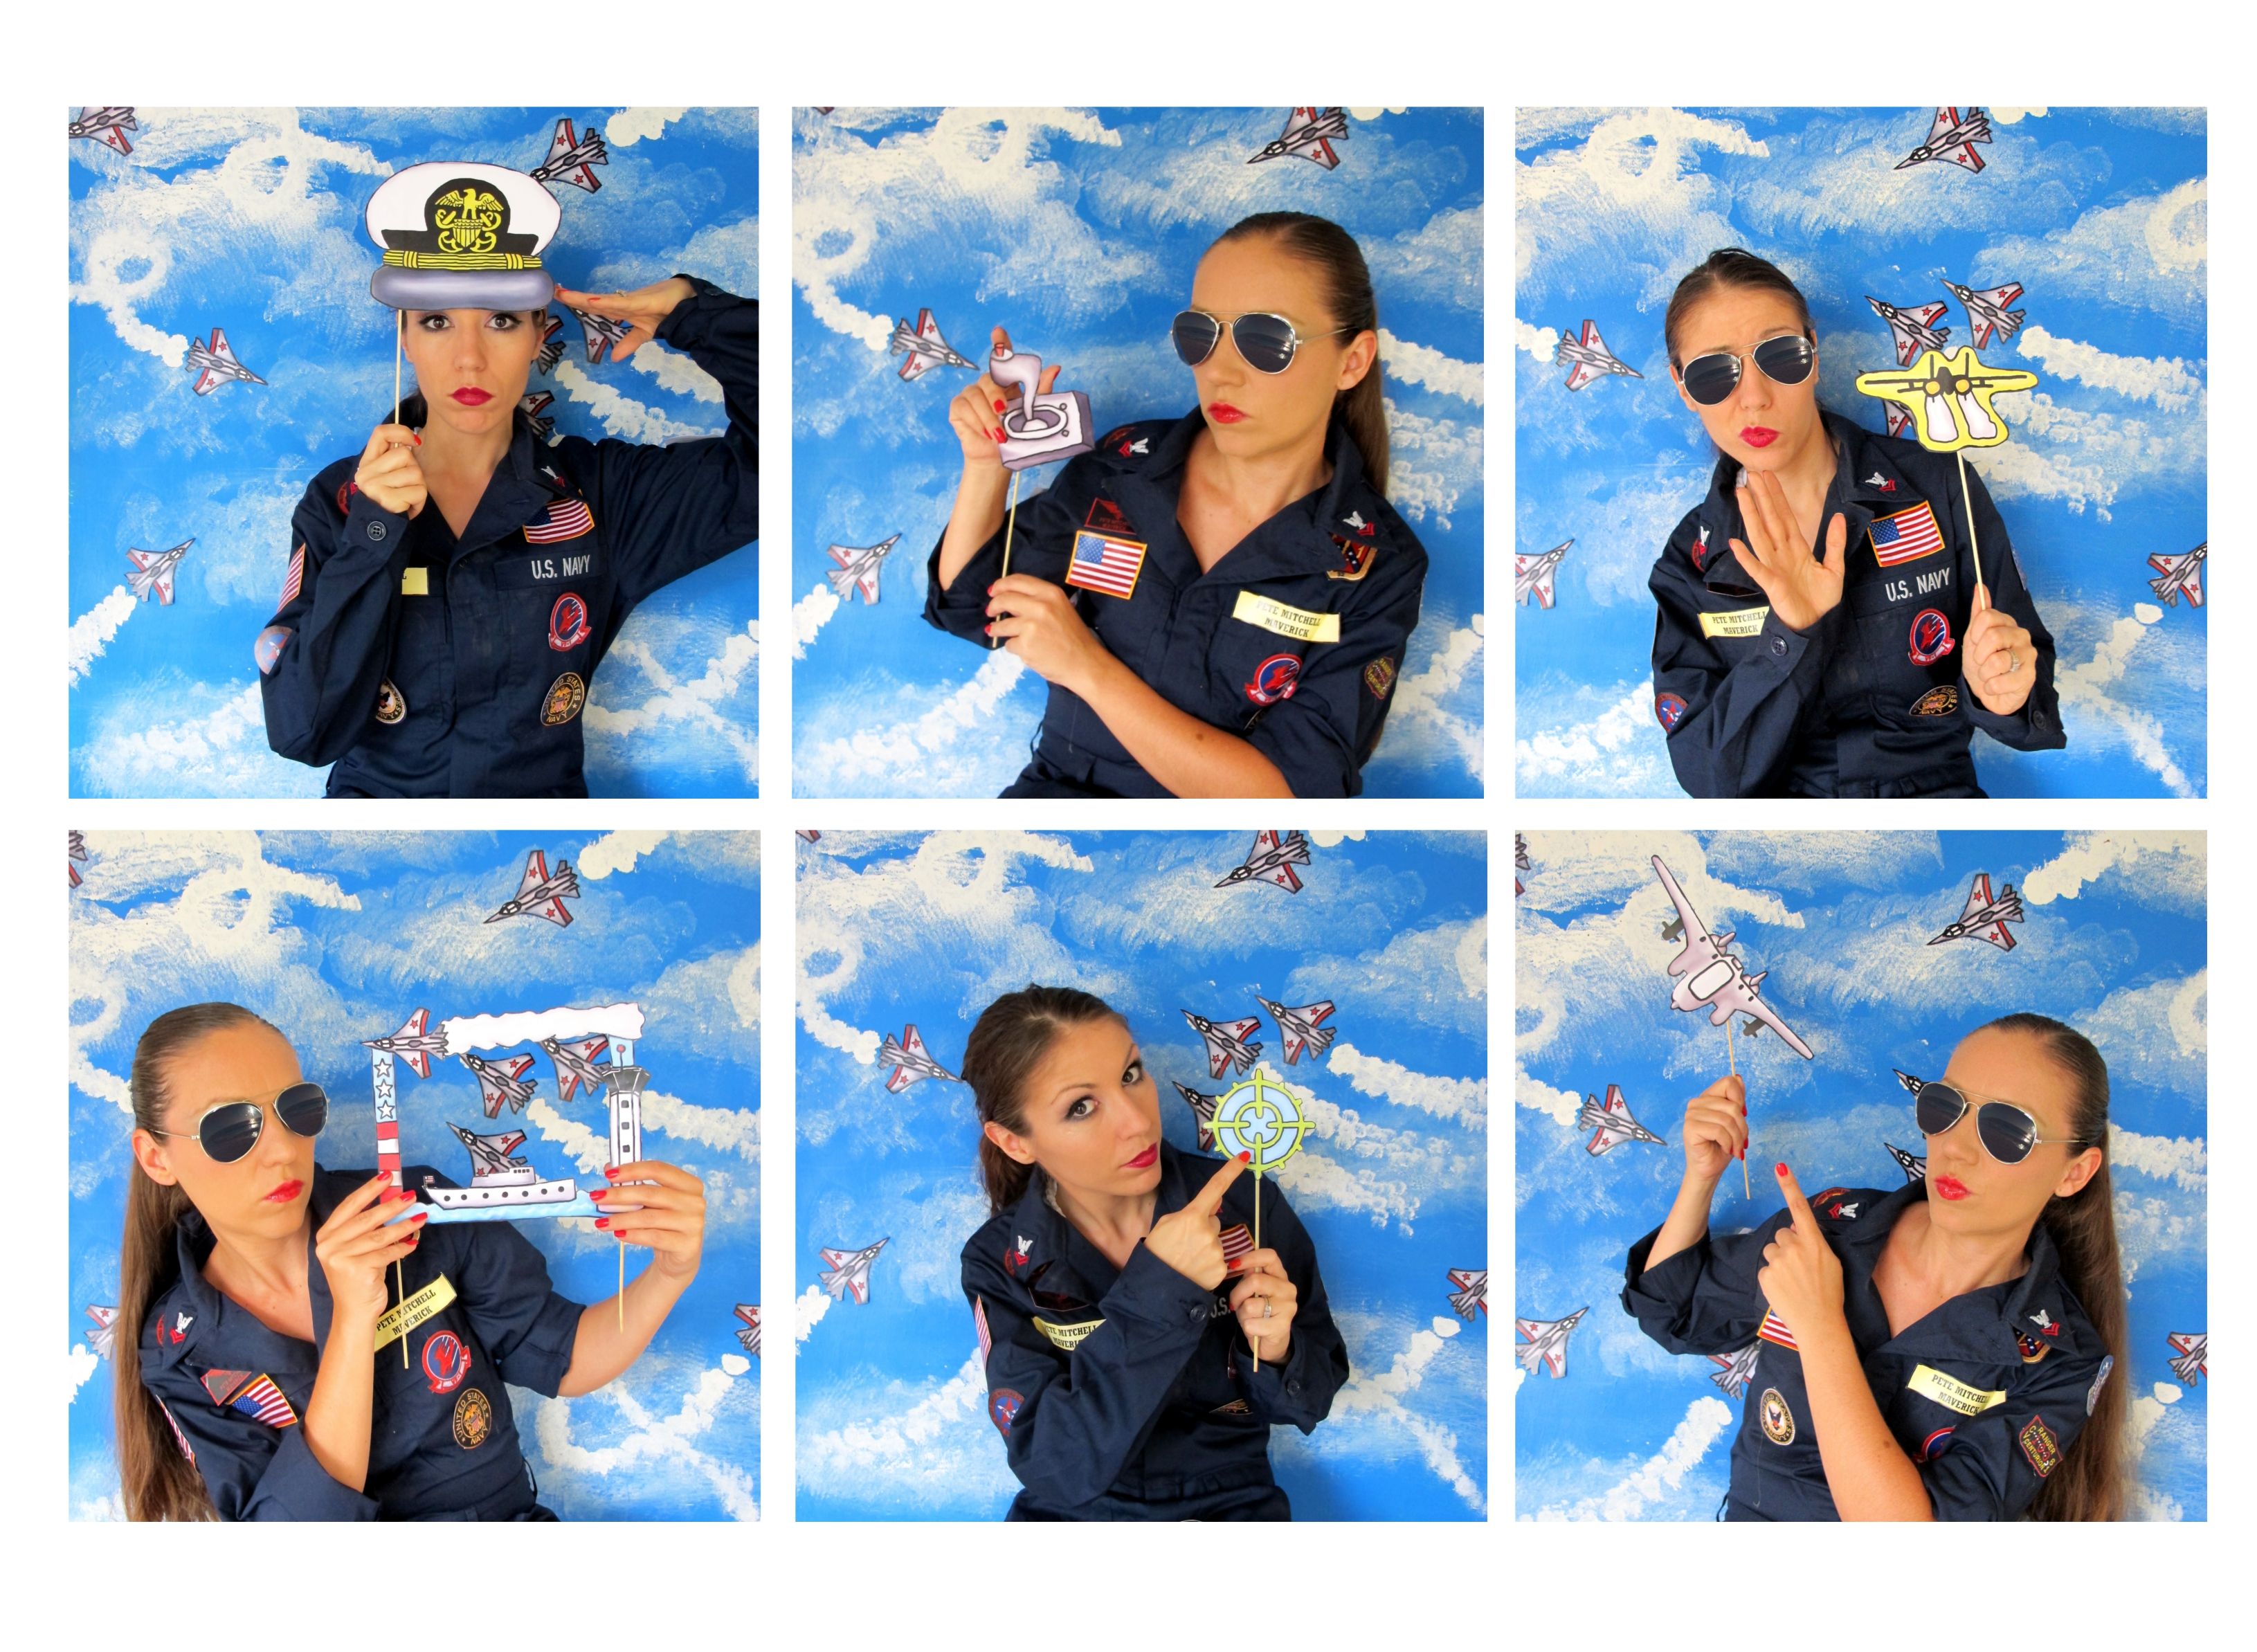 Top Gun Inspired Fighter Pilotnavy Photo Booth Props Perfect For